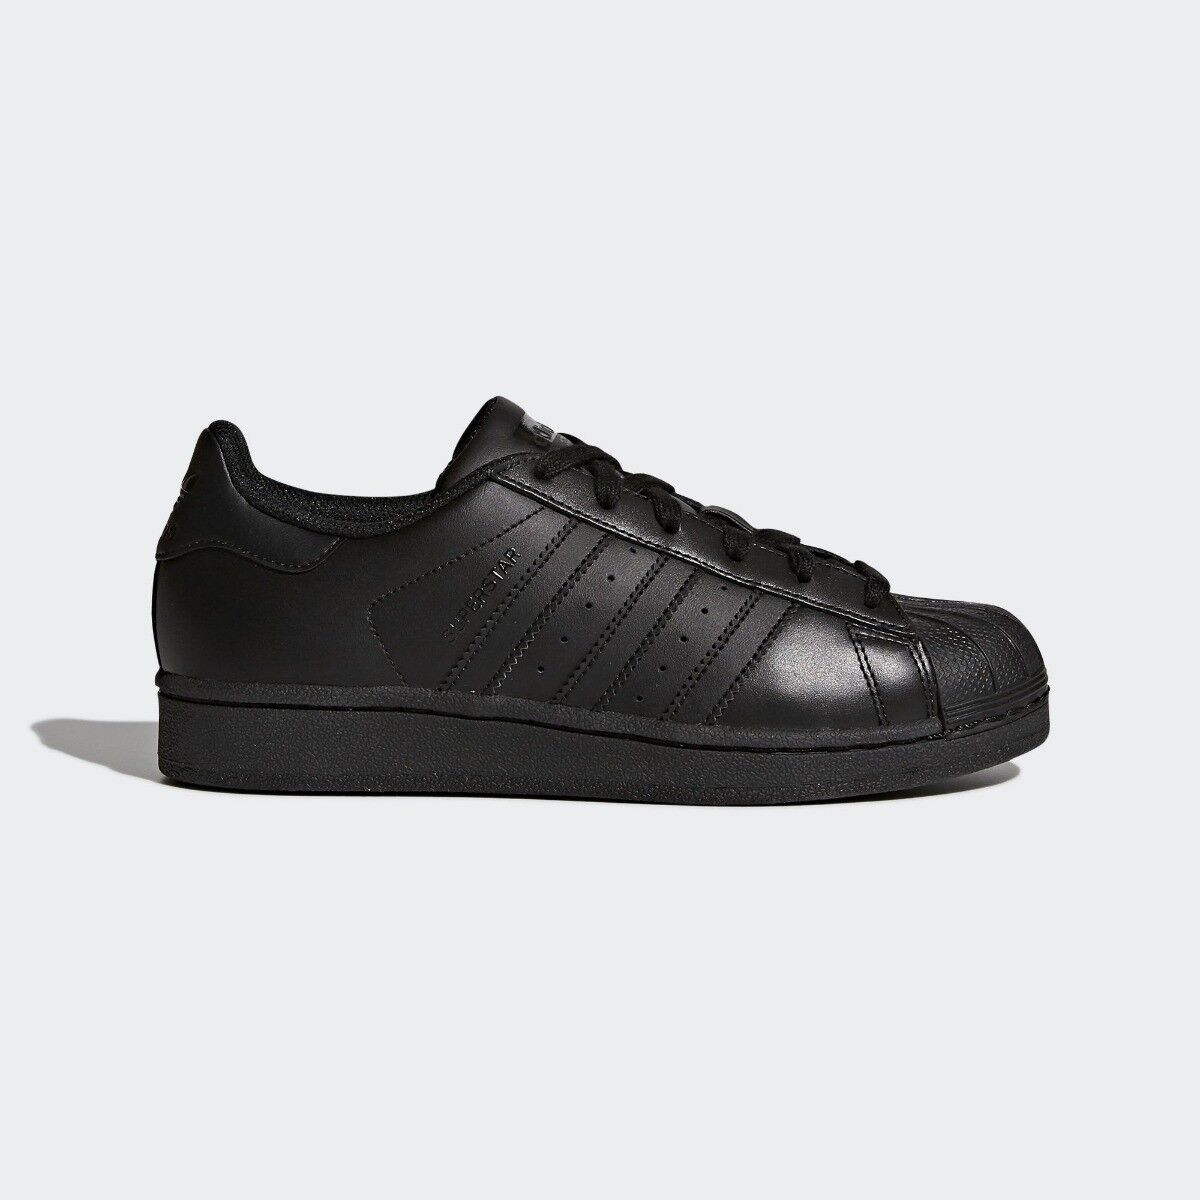 Adidas Superstar Womens Trainer shoes Black Size 4.5 RRP  -